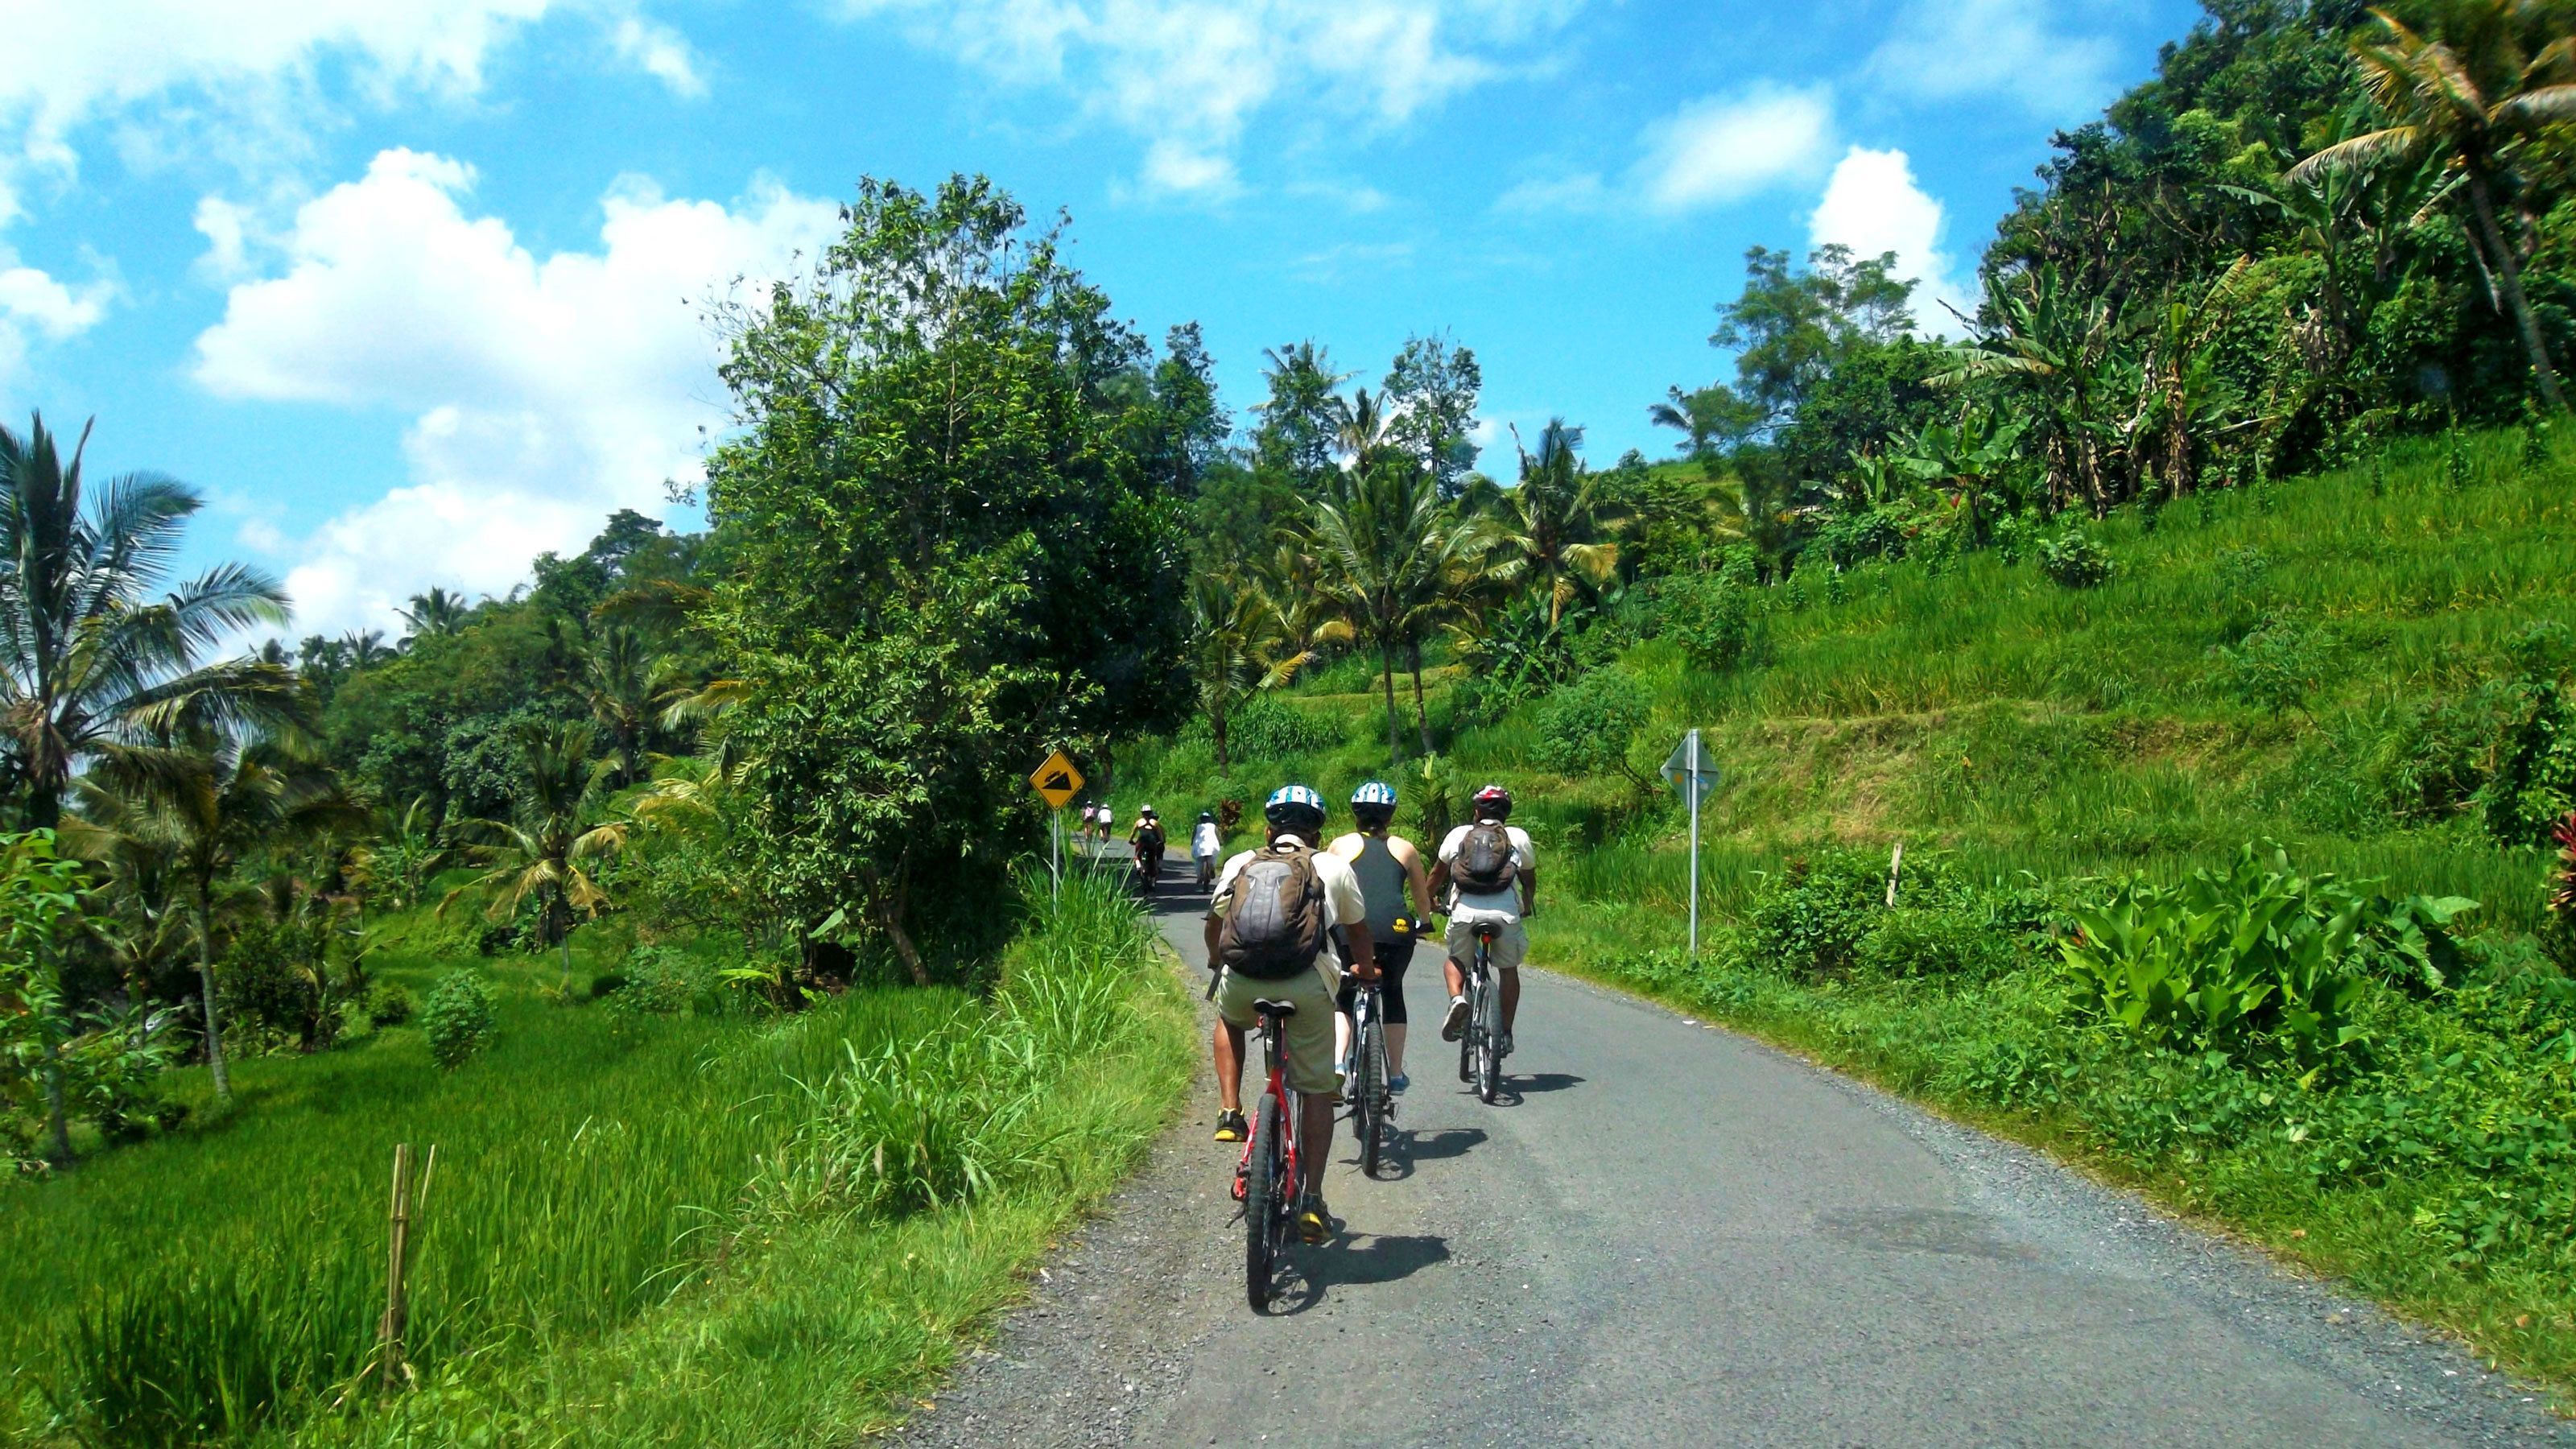 cyclists biking on a narrow paved road in Bali